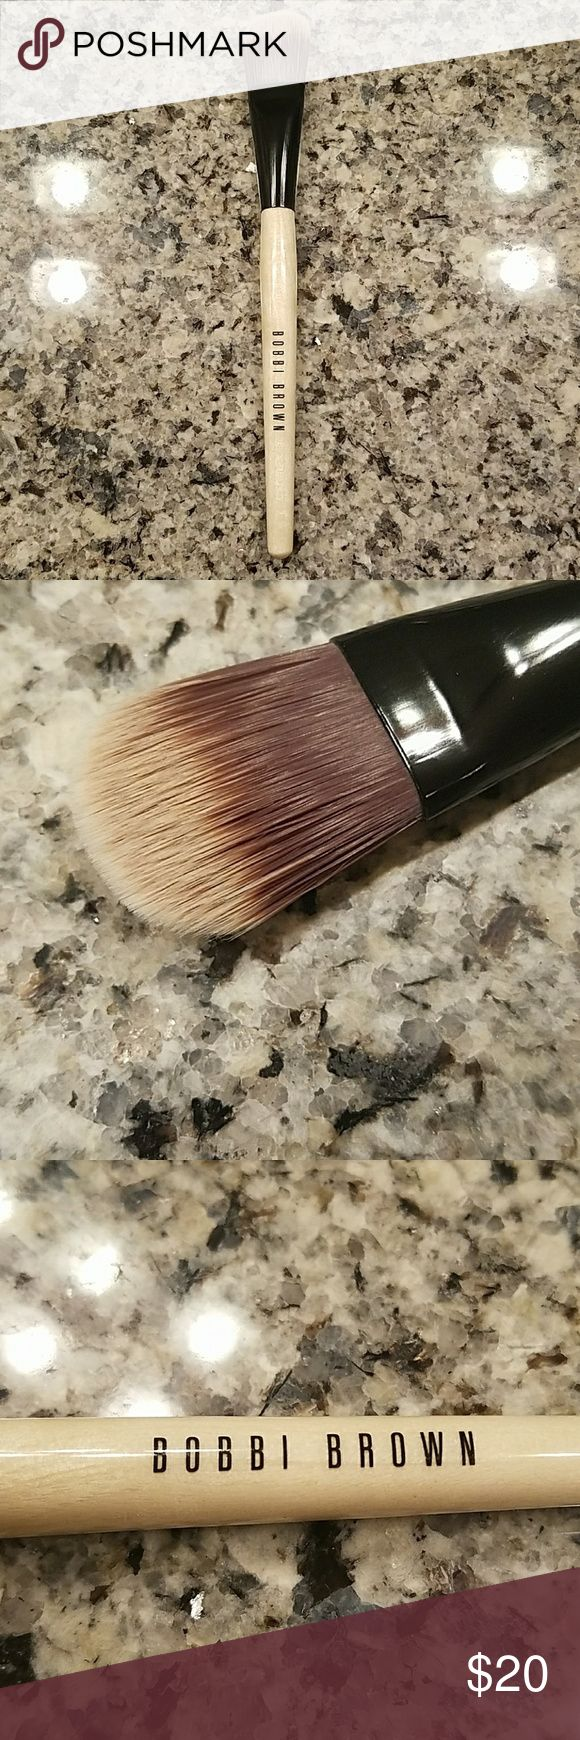 Bobbi Brown Foundation Brush Bobbi Brown foundation brush.  Used once only.  Sanitized and still in perfect condition! Bobbi Brown Makeup Brushes & Tools